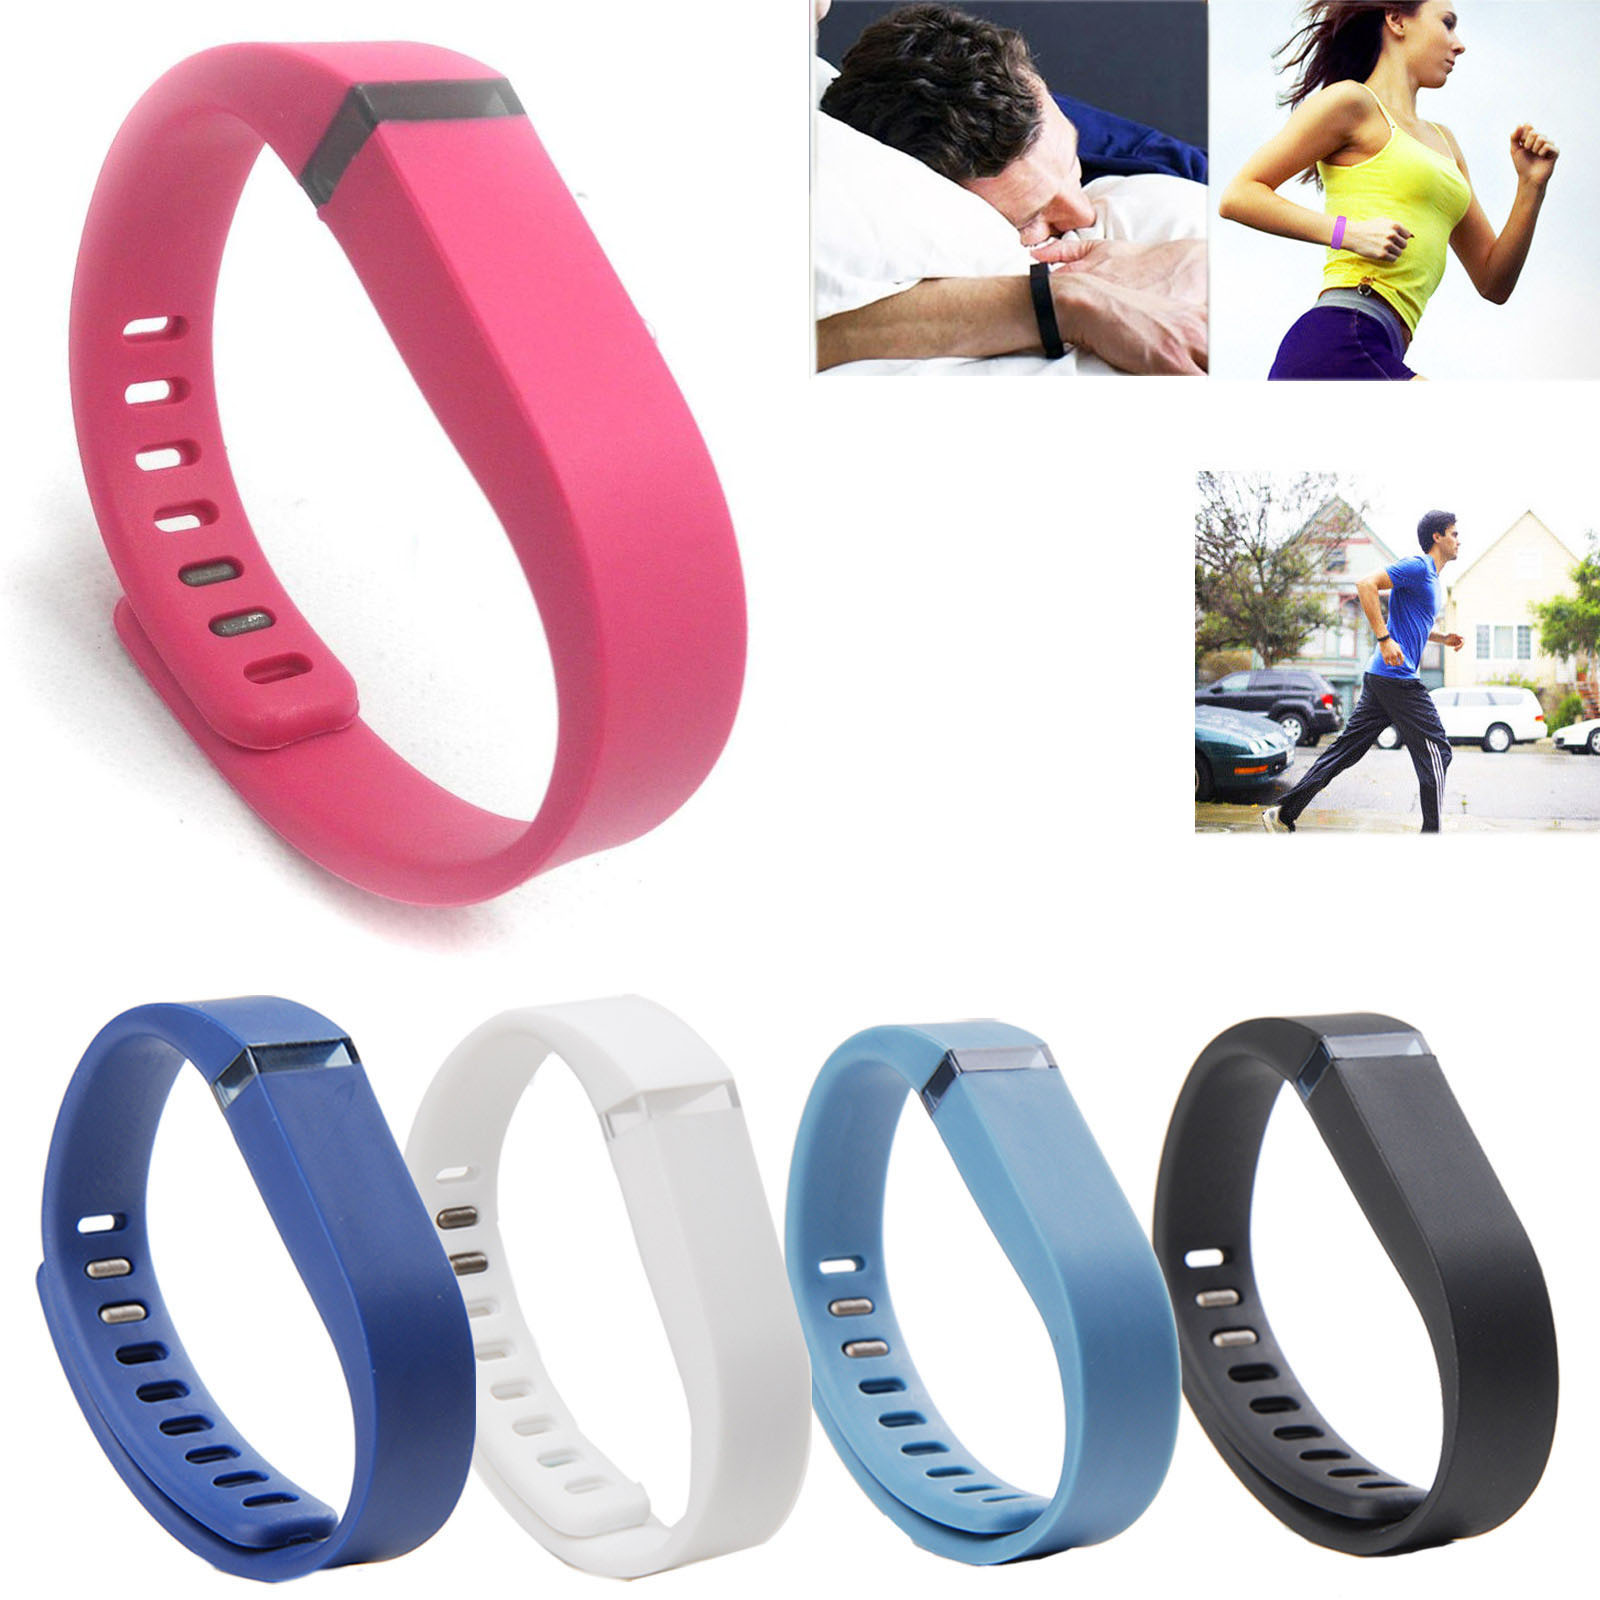 EEEKit 5in1 Bundle Replacement Wrist Band with Clasp for Fitbit Flex Wireless Activity Sleep Wristband